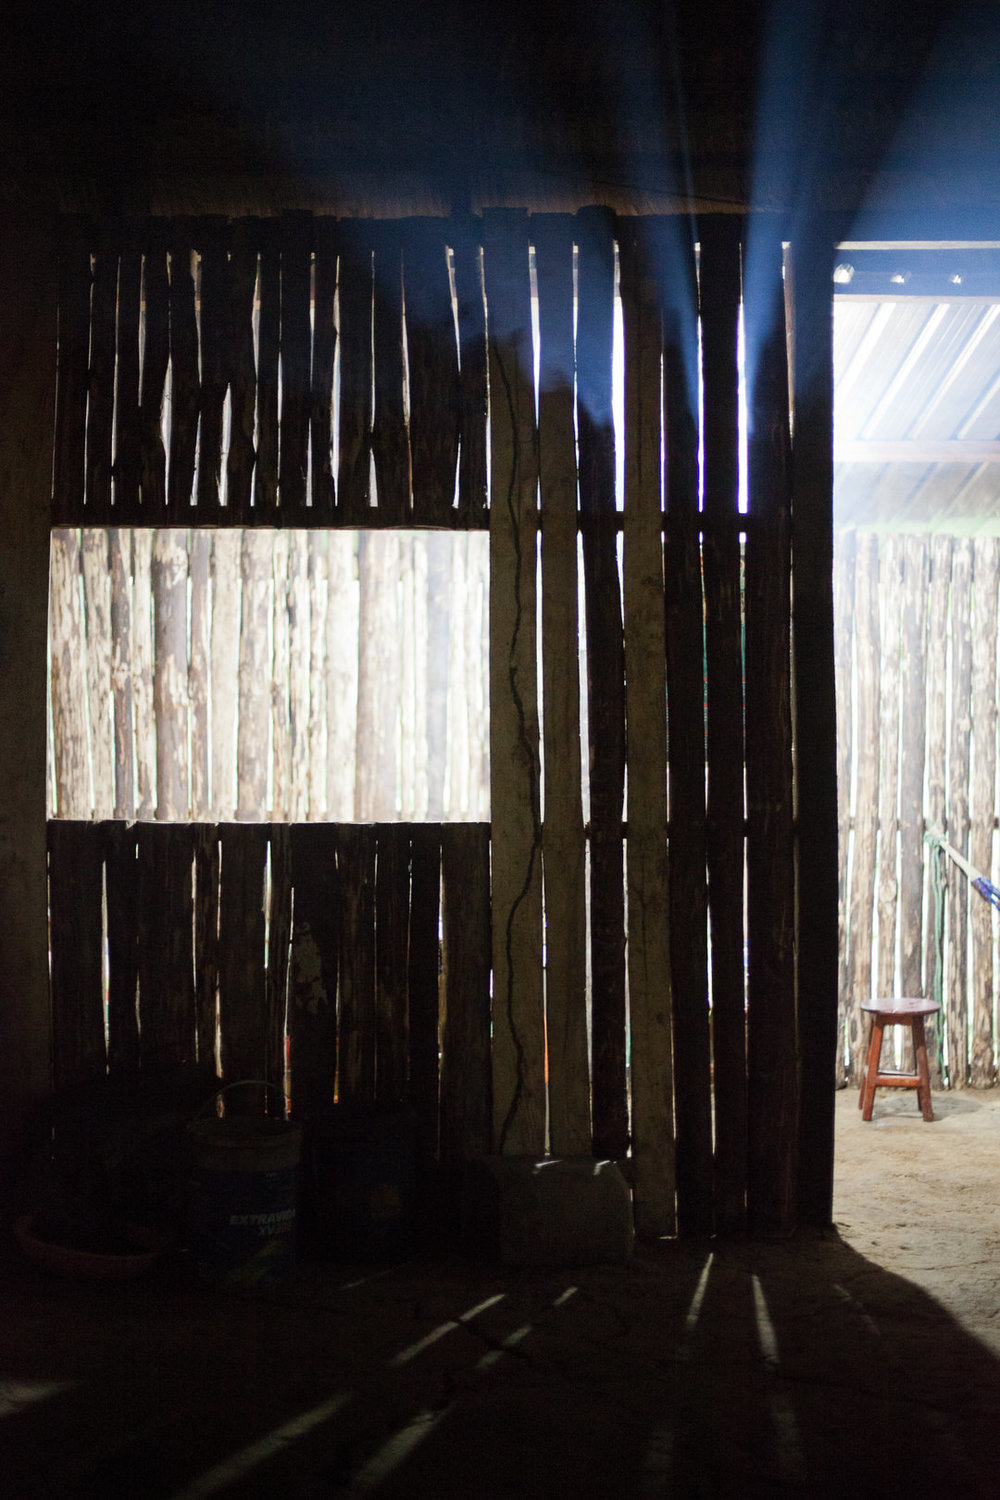 melissa kruse photography - chinimp tuna station, amazon, ecuador-1.jpg